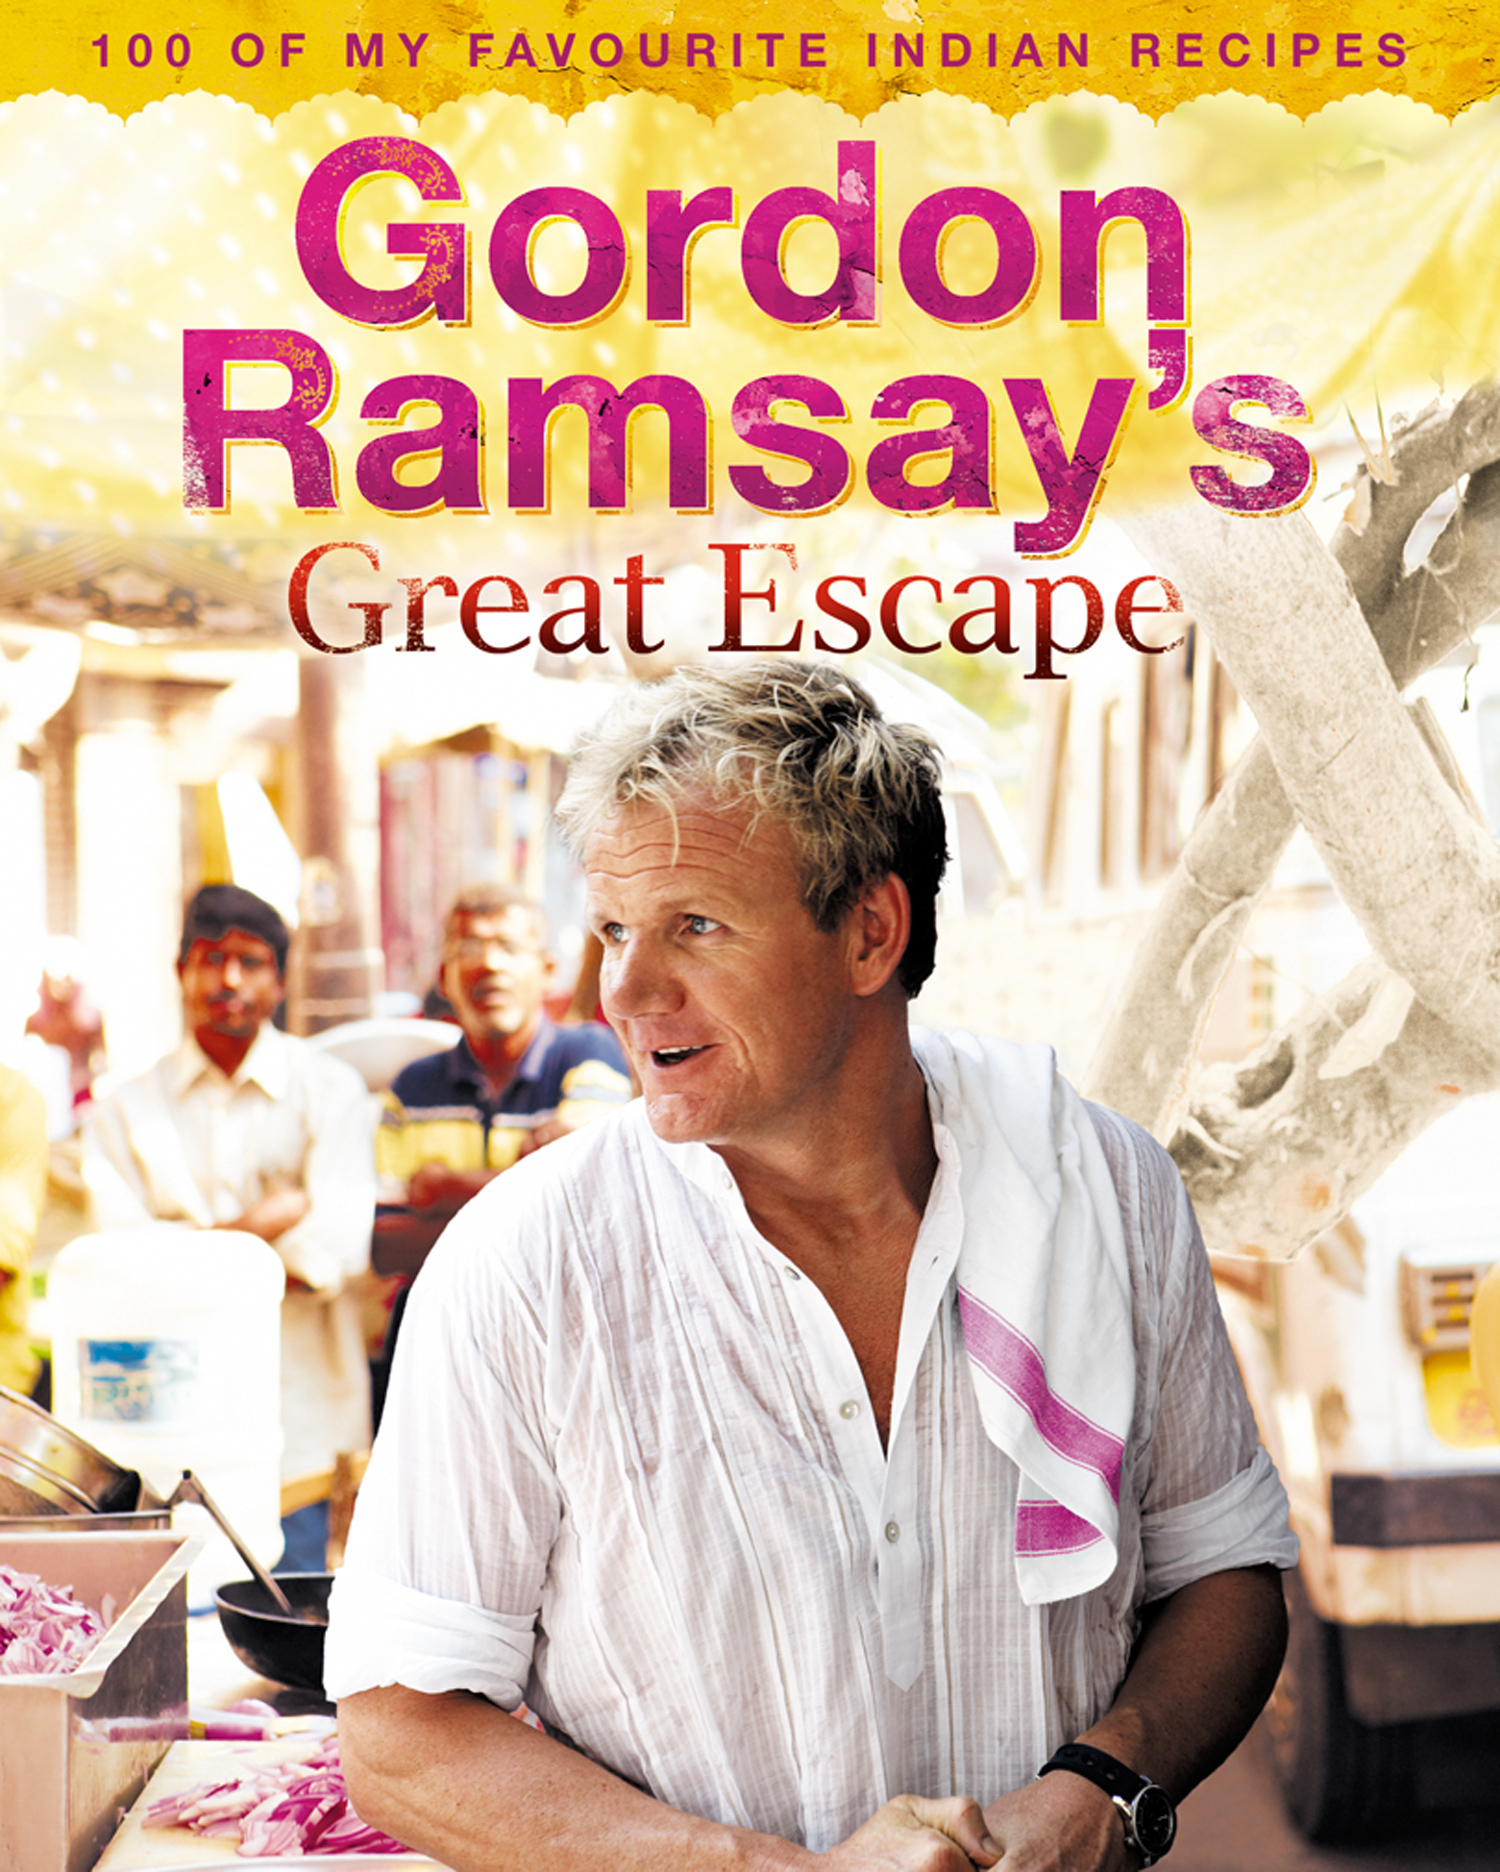 Gordon Ramsay?s Great Escape: 100 of my favourite Indian recipes